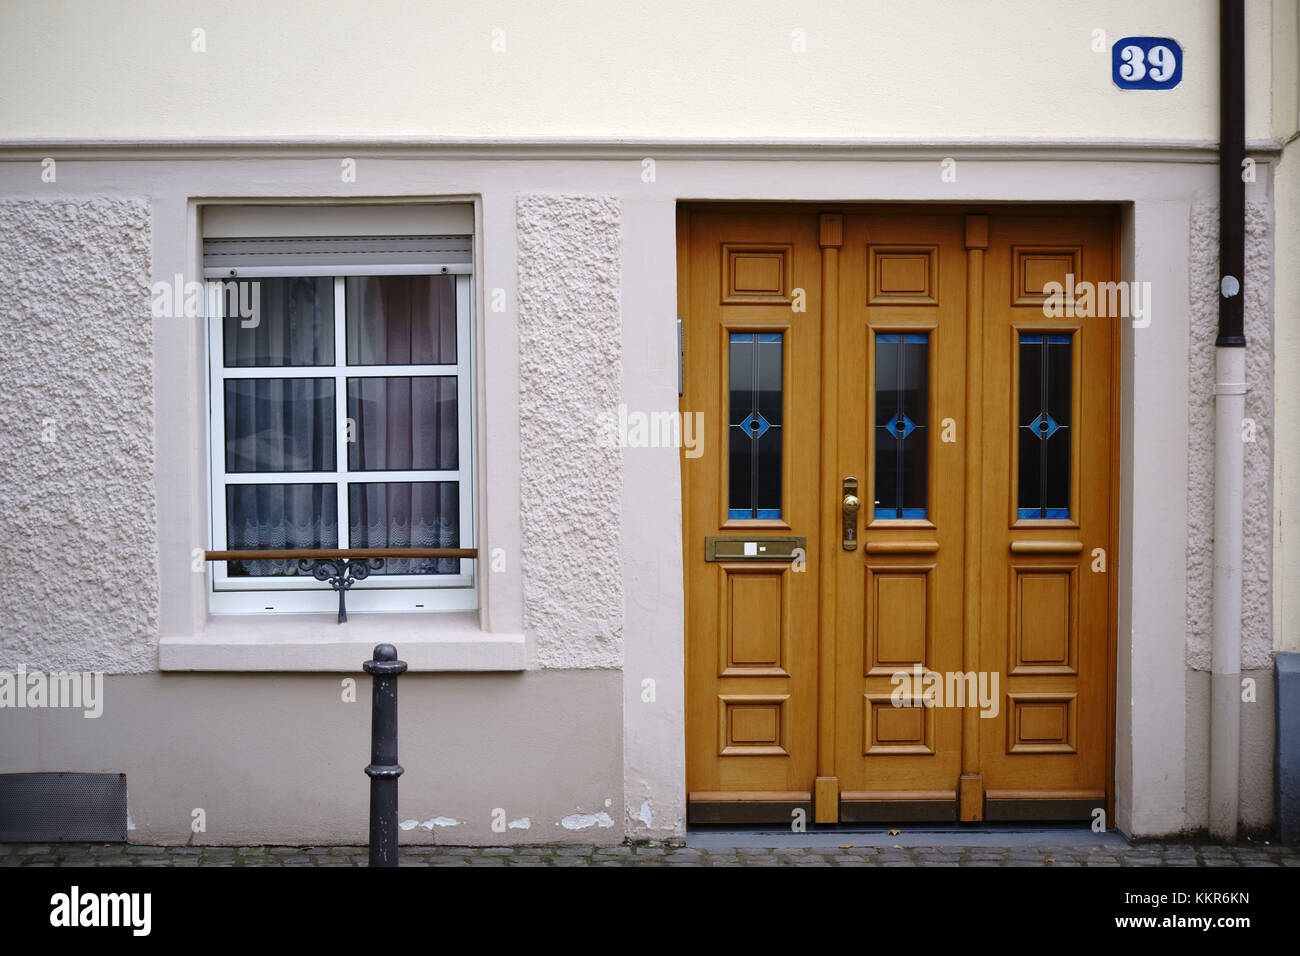 The entrance of an Old Town flat with very low ceilings and a window. Stock Photo